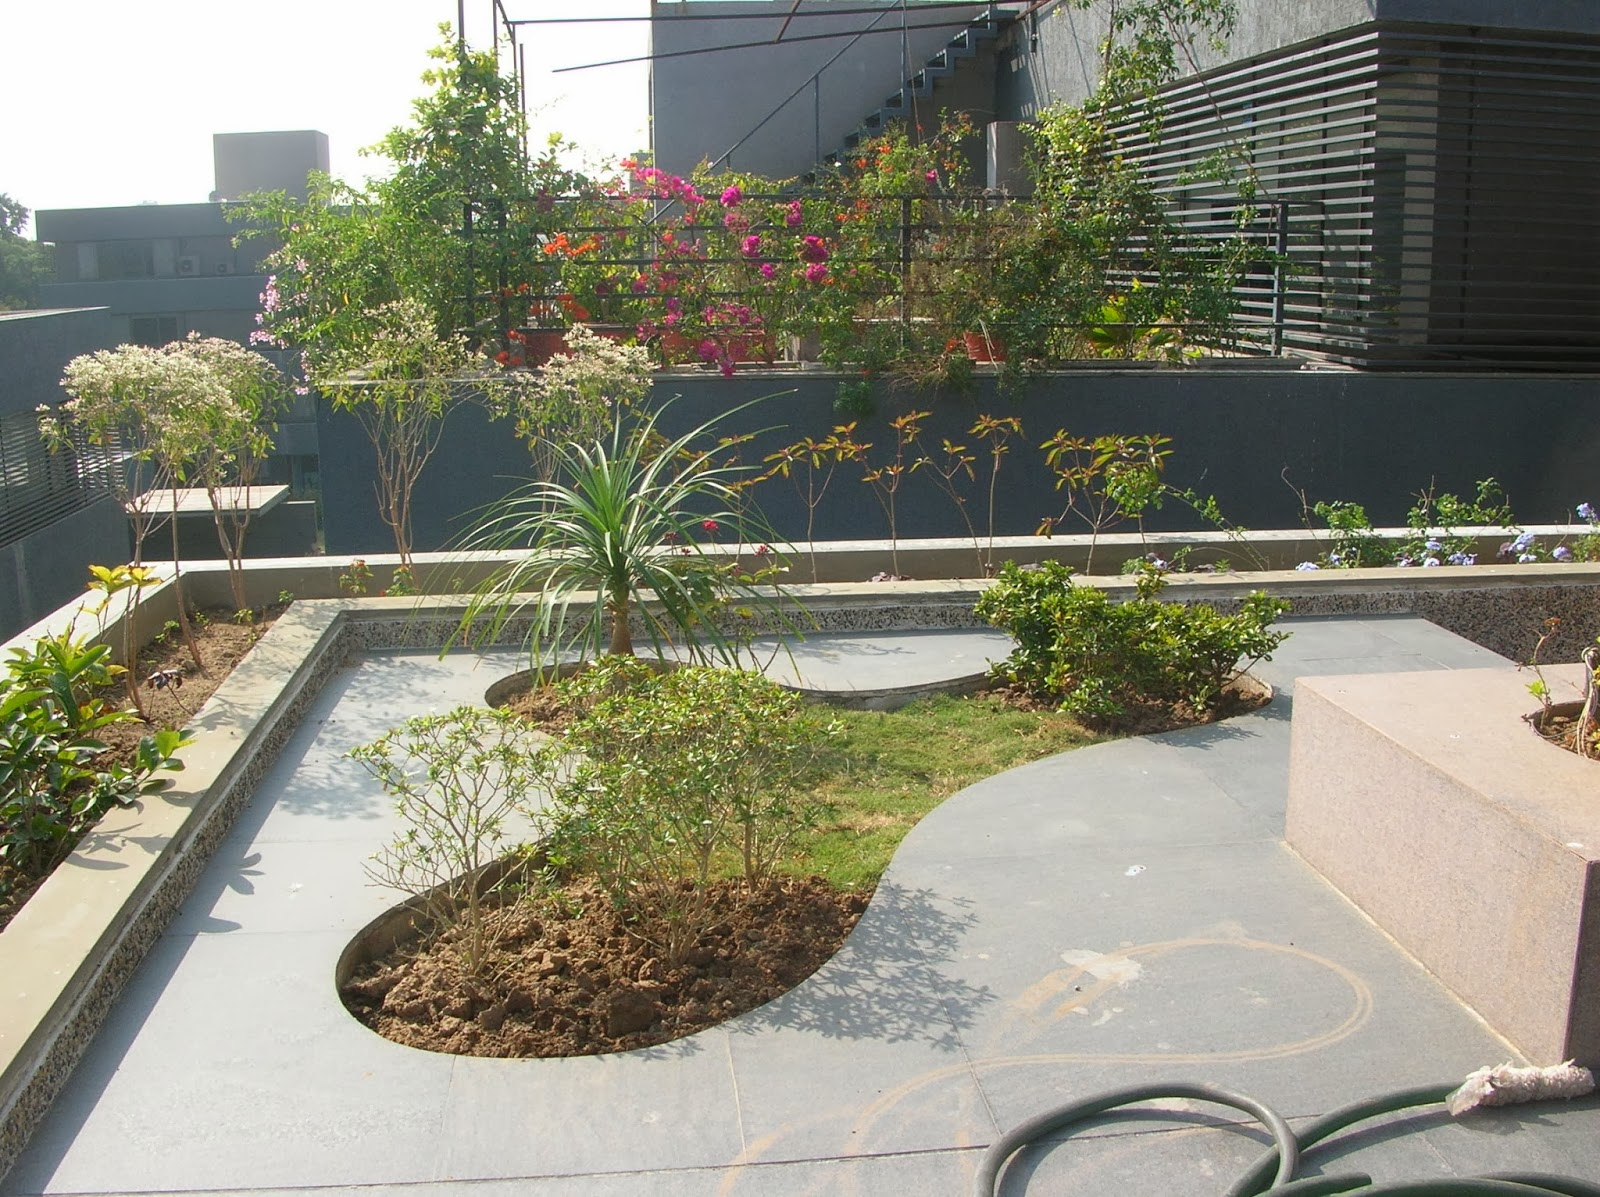 Bonsai Trees And Plants In Ahmedabad For Sale Garden